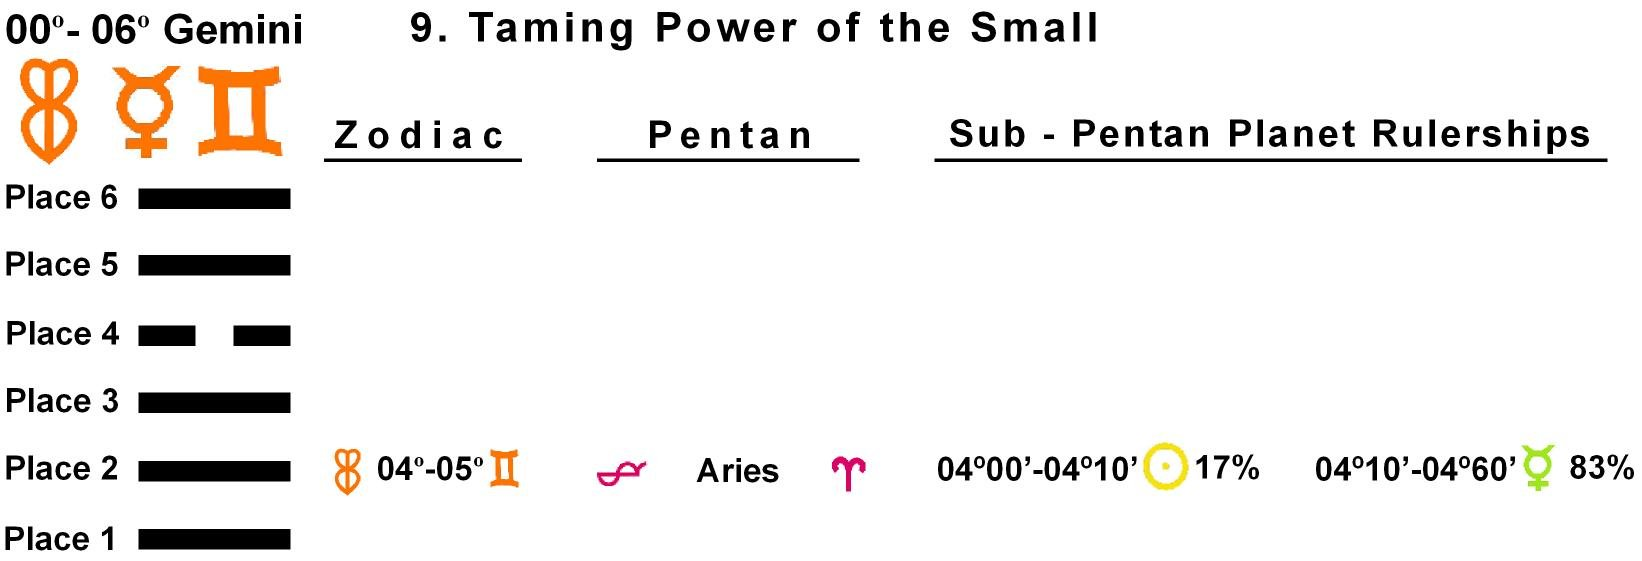 Pent-lines-03GE 04-05 Hx-09 Taming Power Of The Small